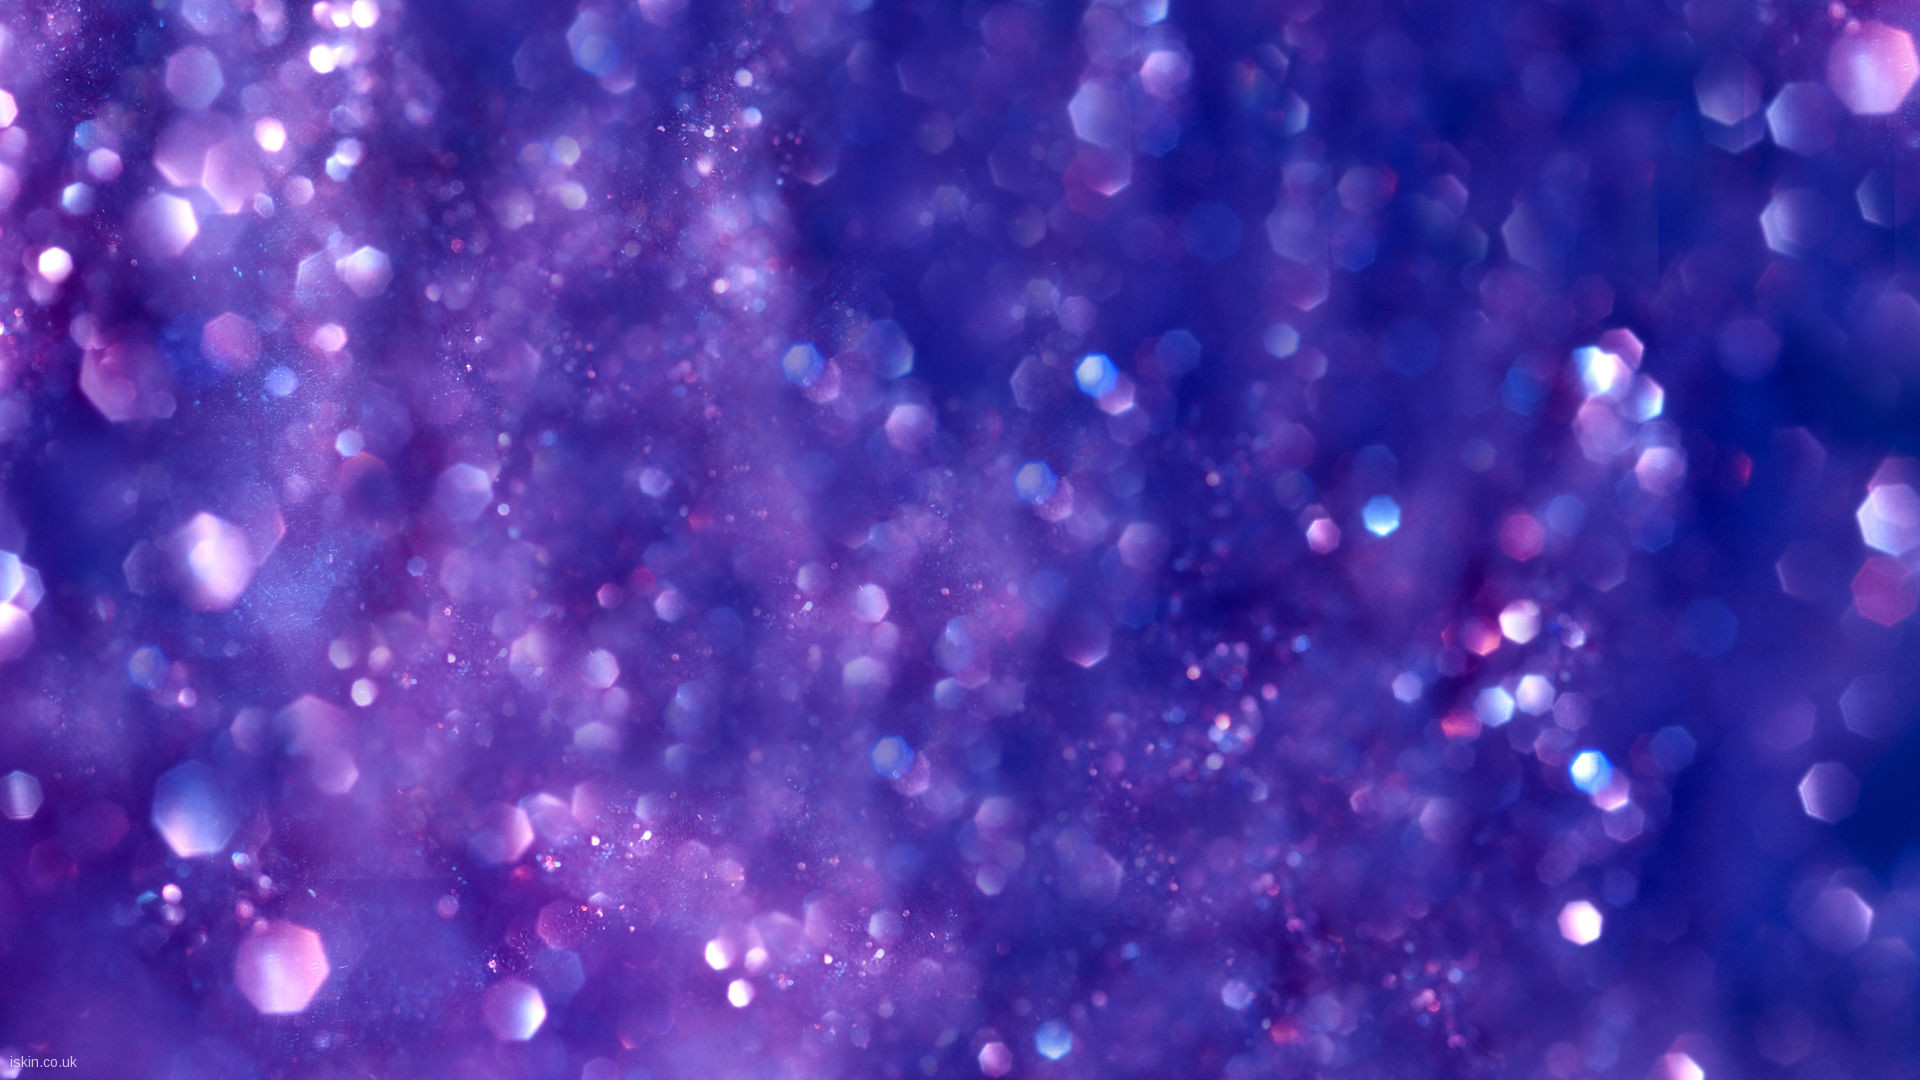 purple glitter Desktop Wallpaper | iskin.co.uk